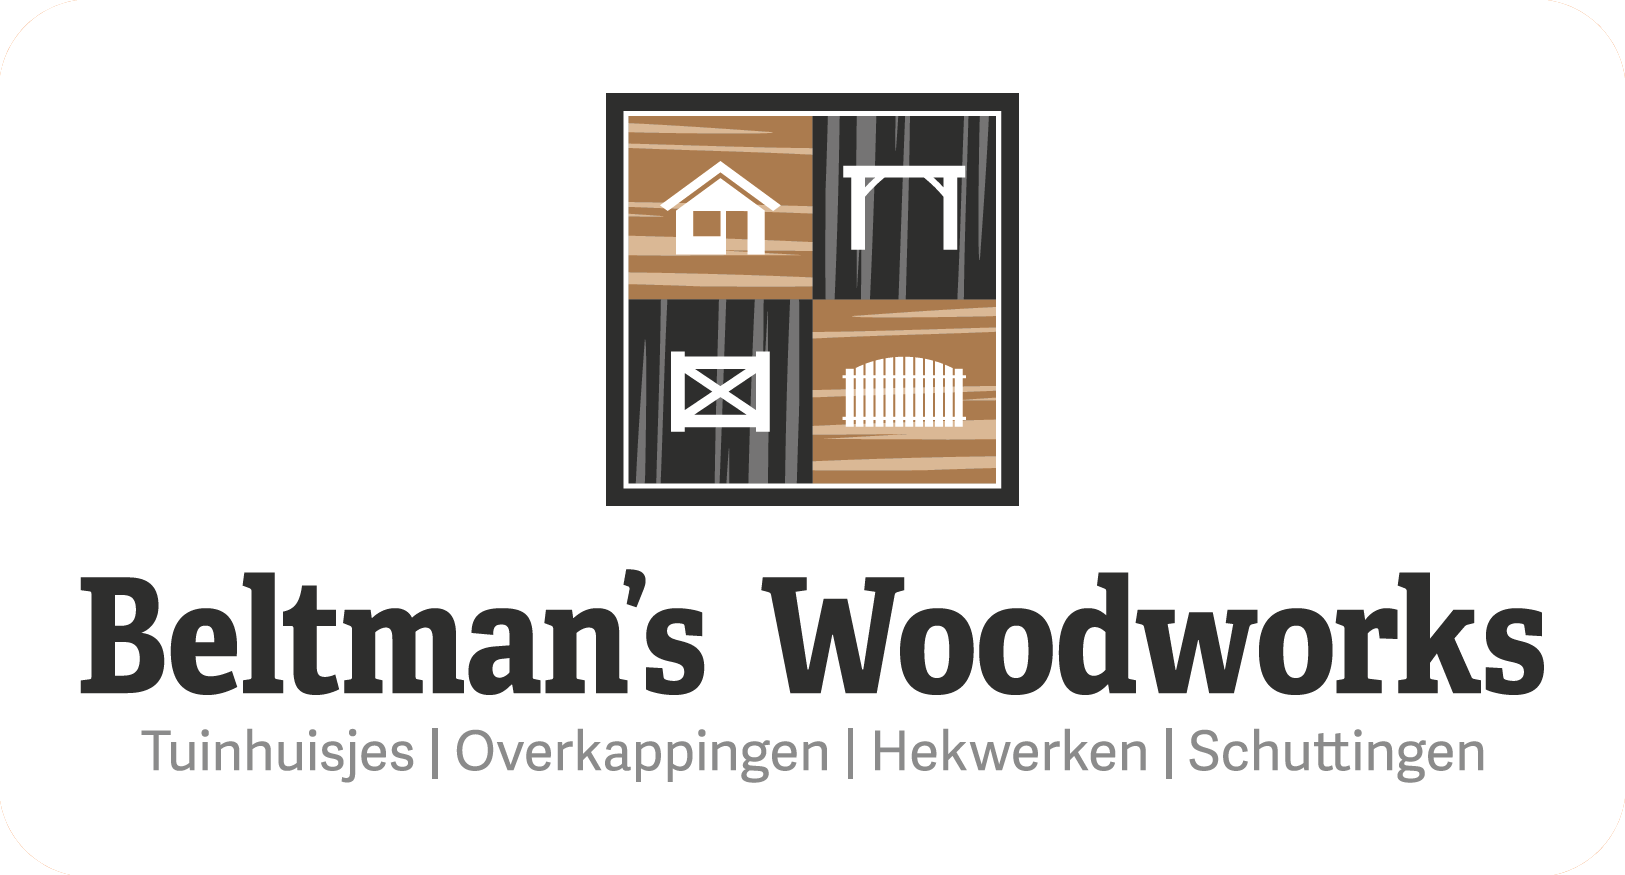 Beltmans Woodworks